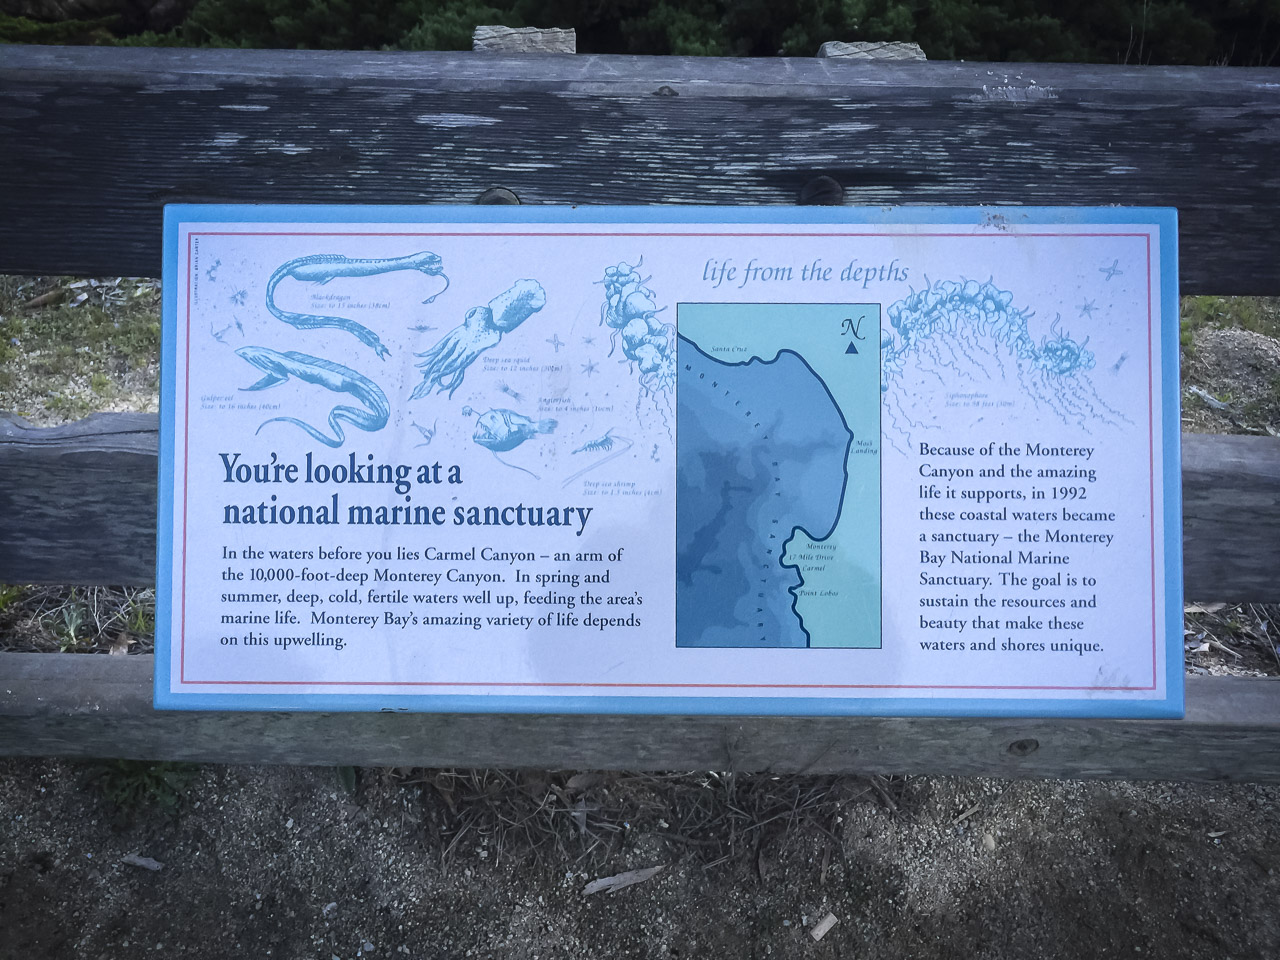 Pacific Grove Marine Gardens Conservation Area